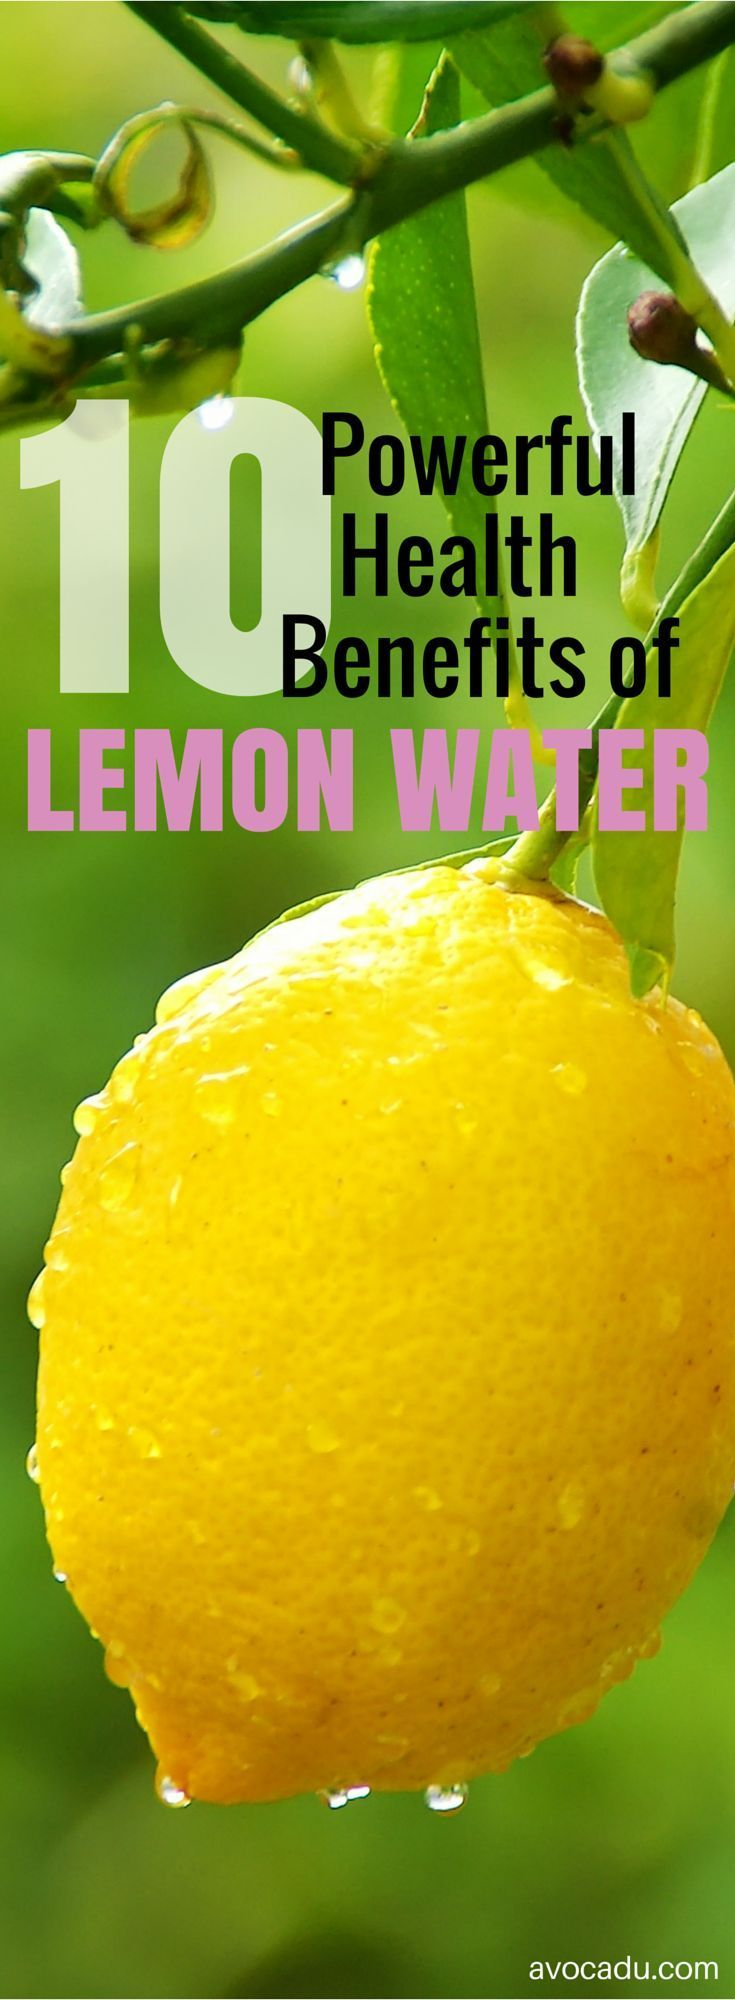 Master Cleanse – Lemonade Water Detox Diet- Effective Recipe For Weightloss